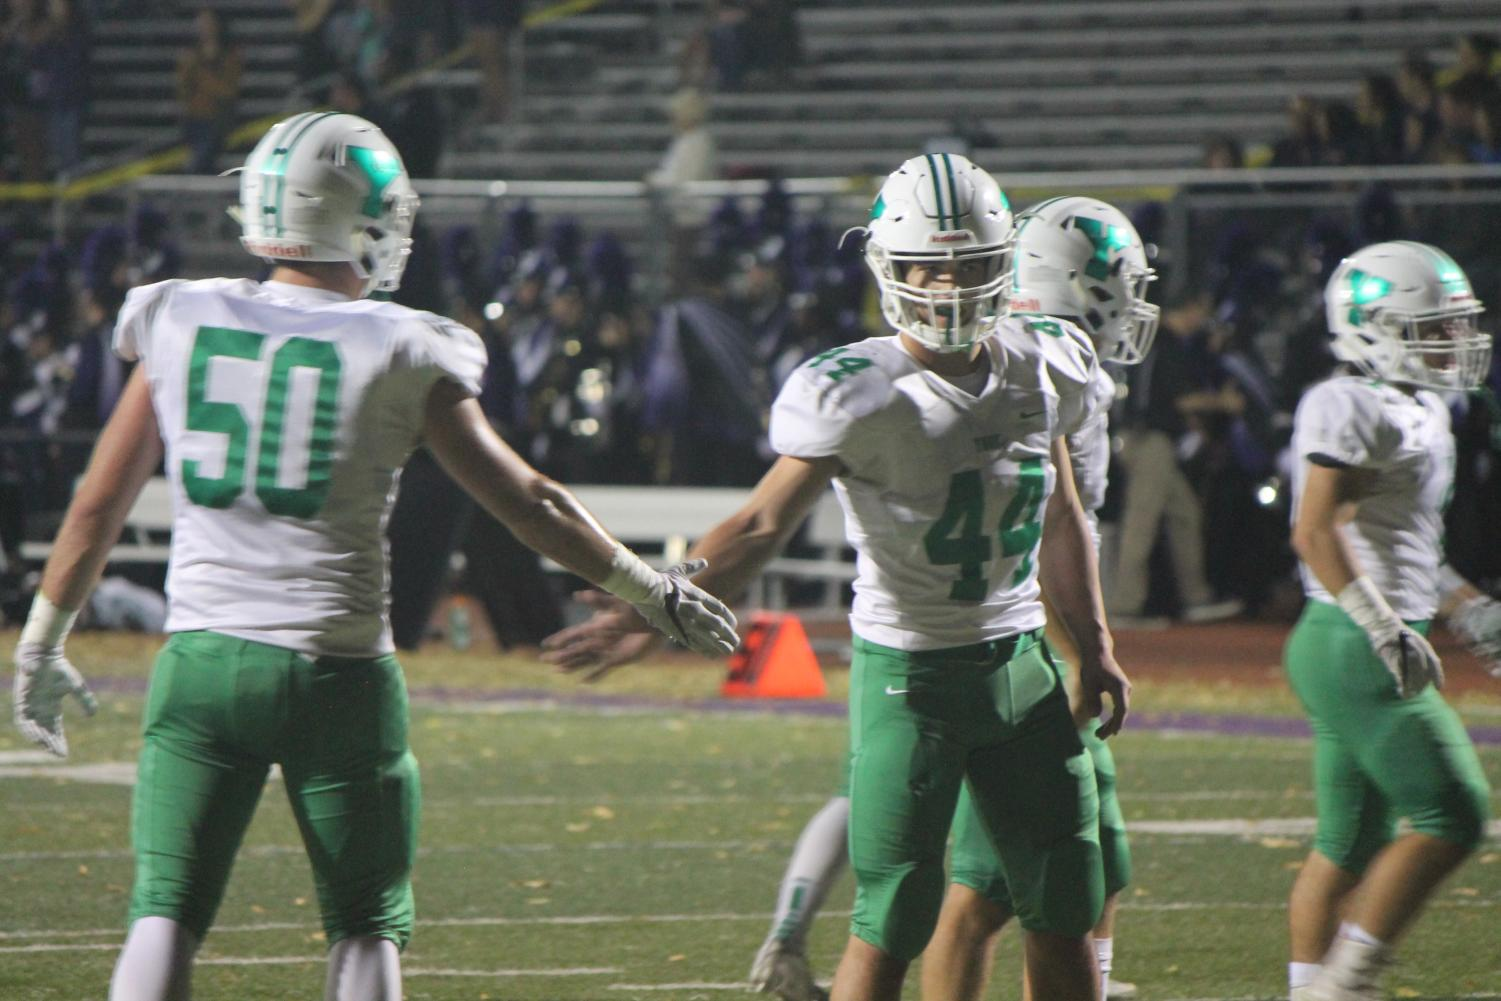 Seniors Liam Enright (50) and Chris Eckard (44) dap each other up after making a big play.